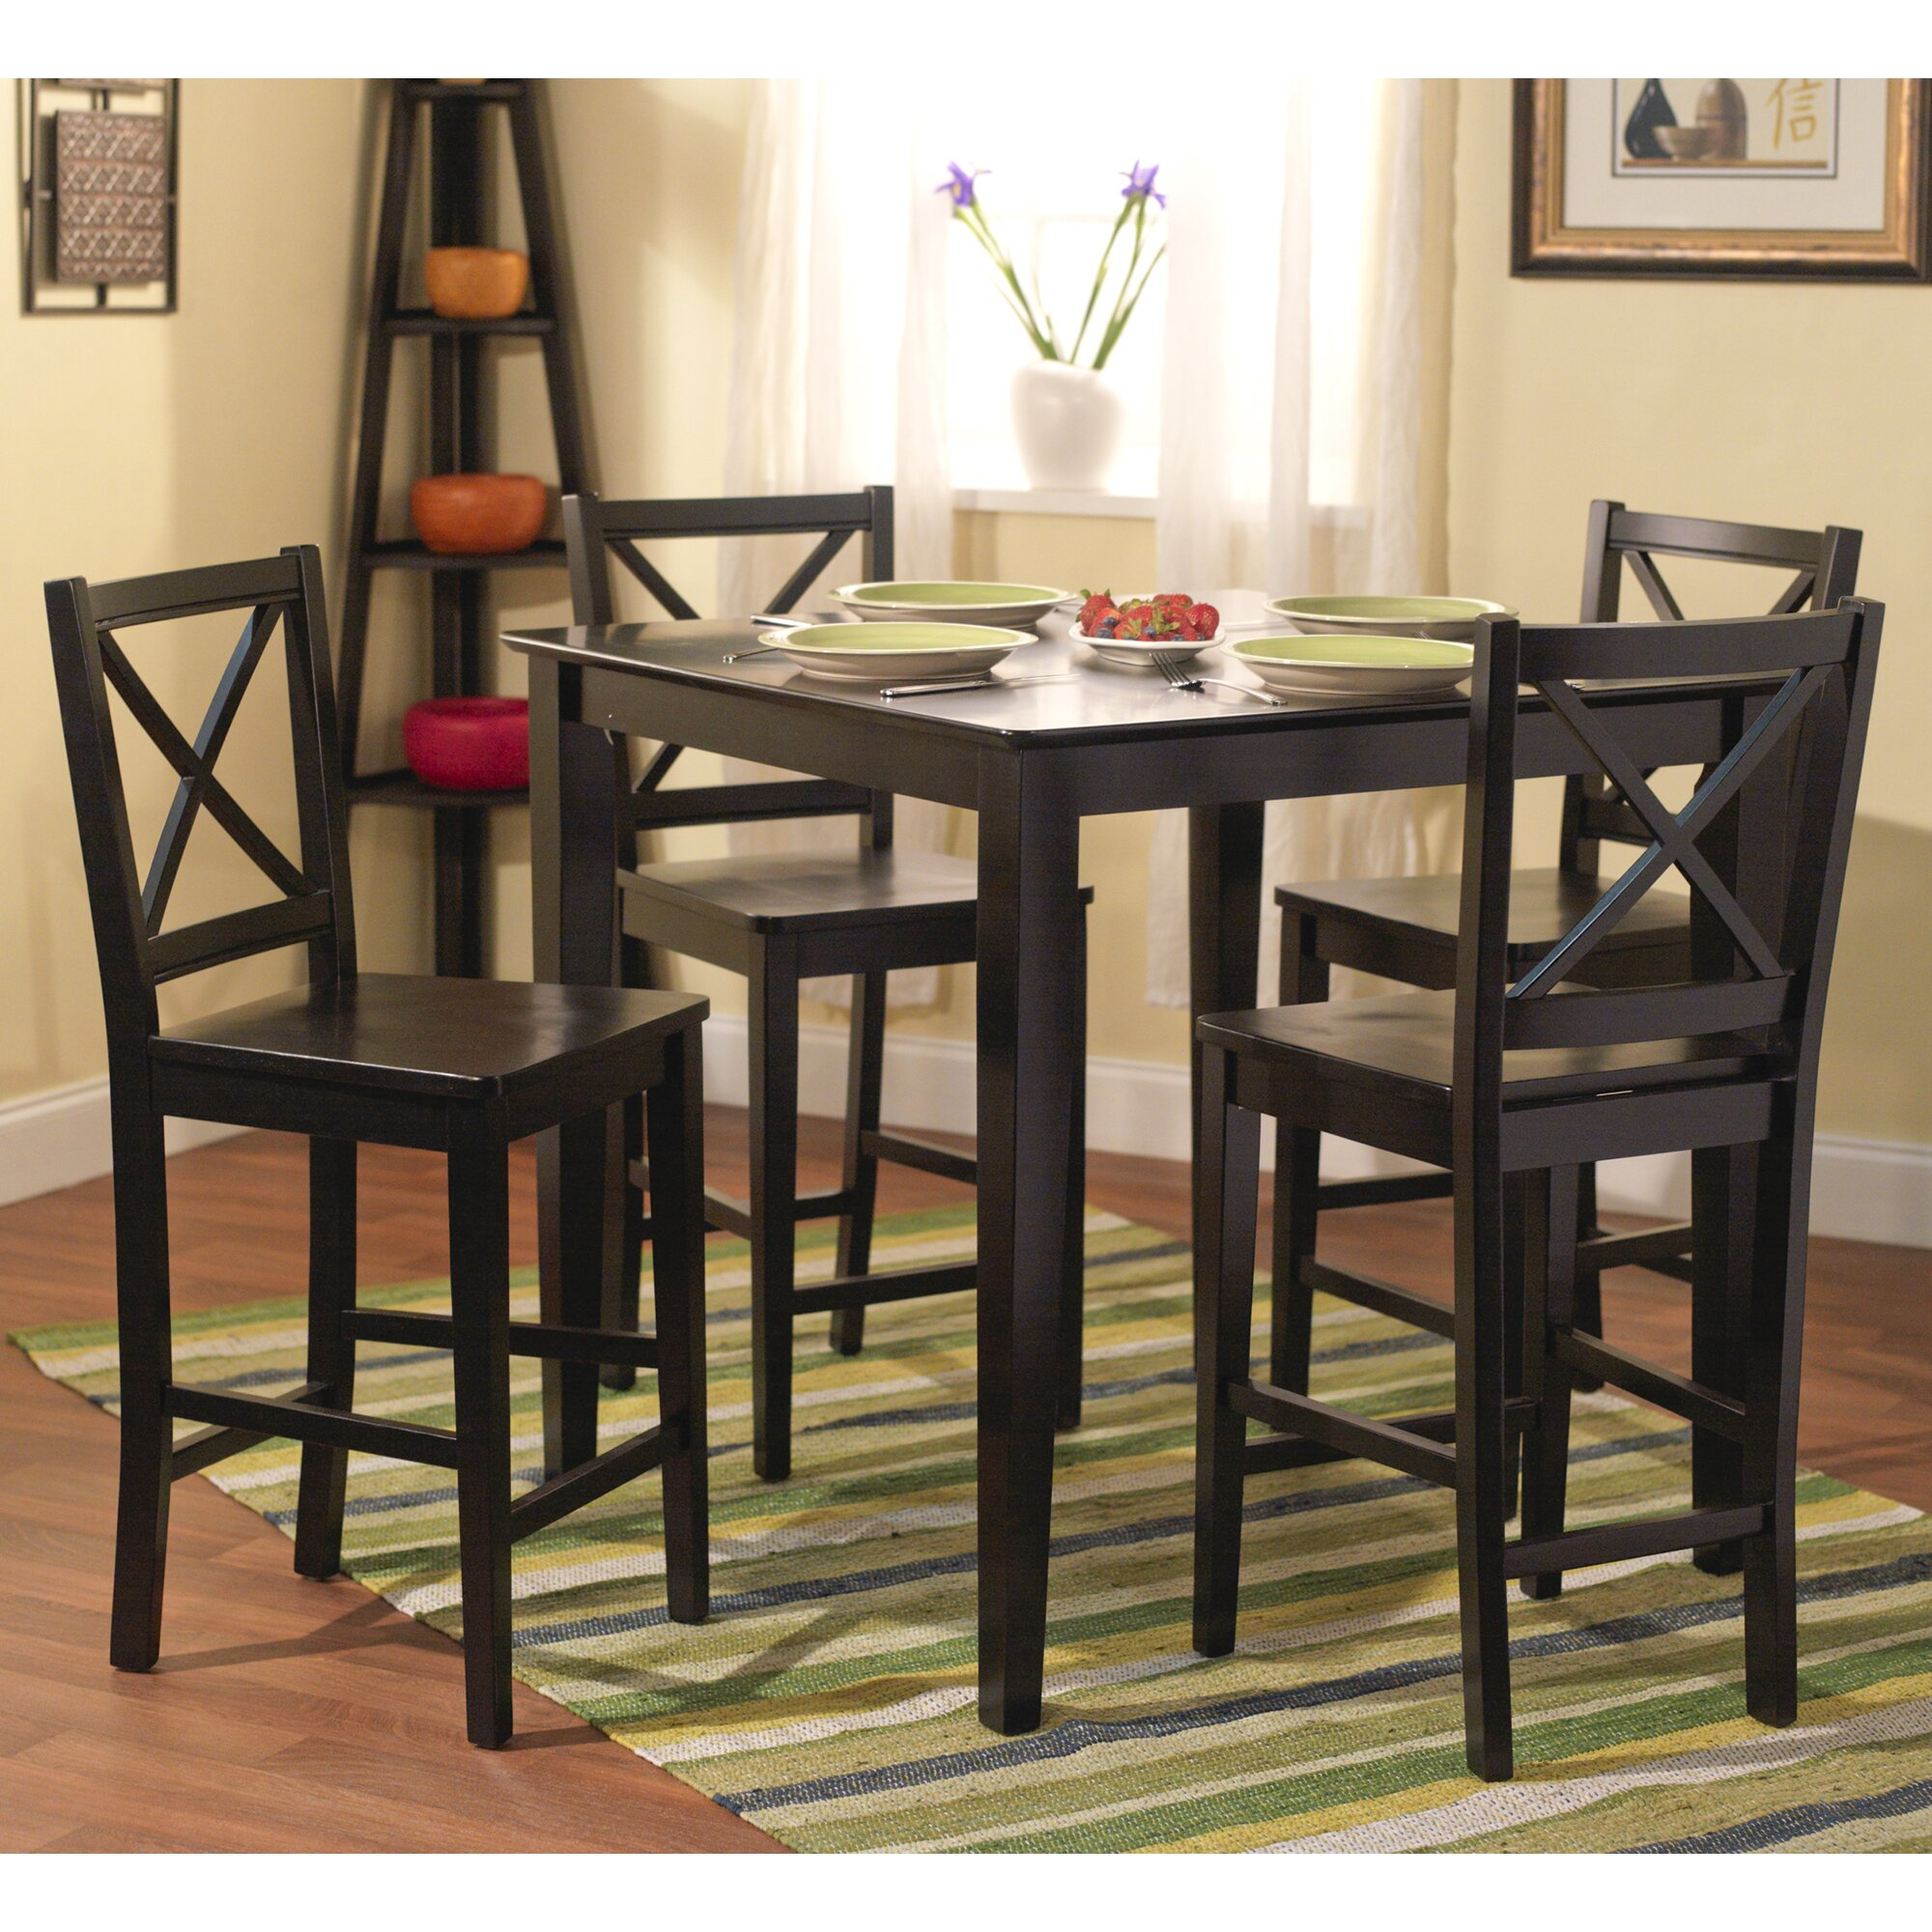 worthington 5 piece counter height dining set